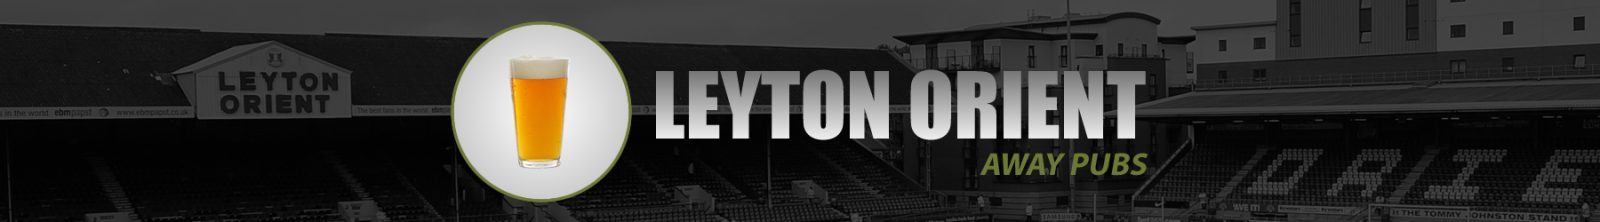 Leyton Orient Away Pubs